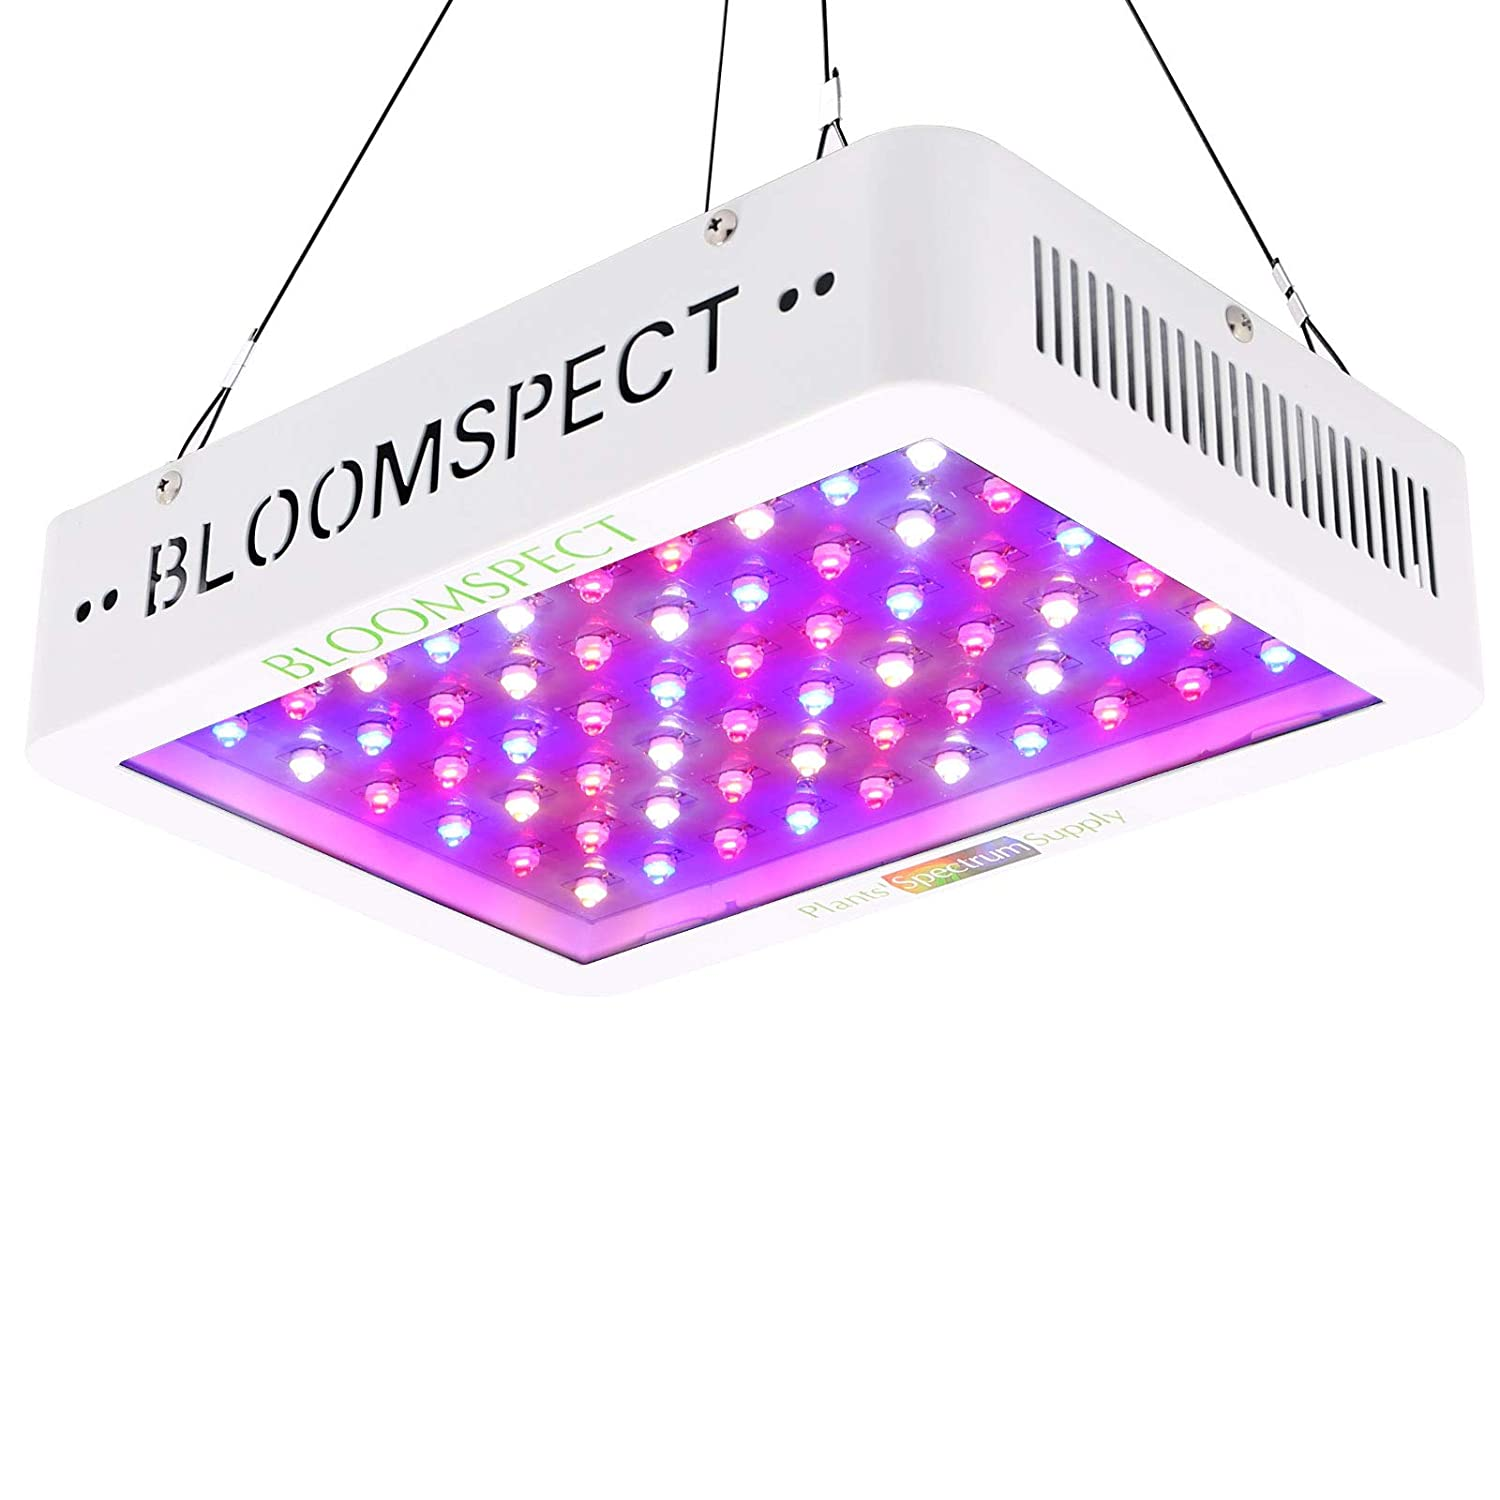 Bloomspect 600 watts LED Grow Light for Indoor Marijuana Review